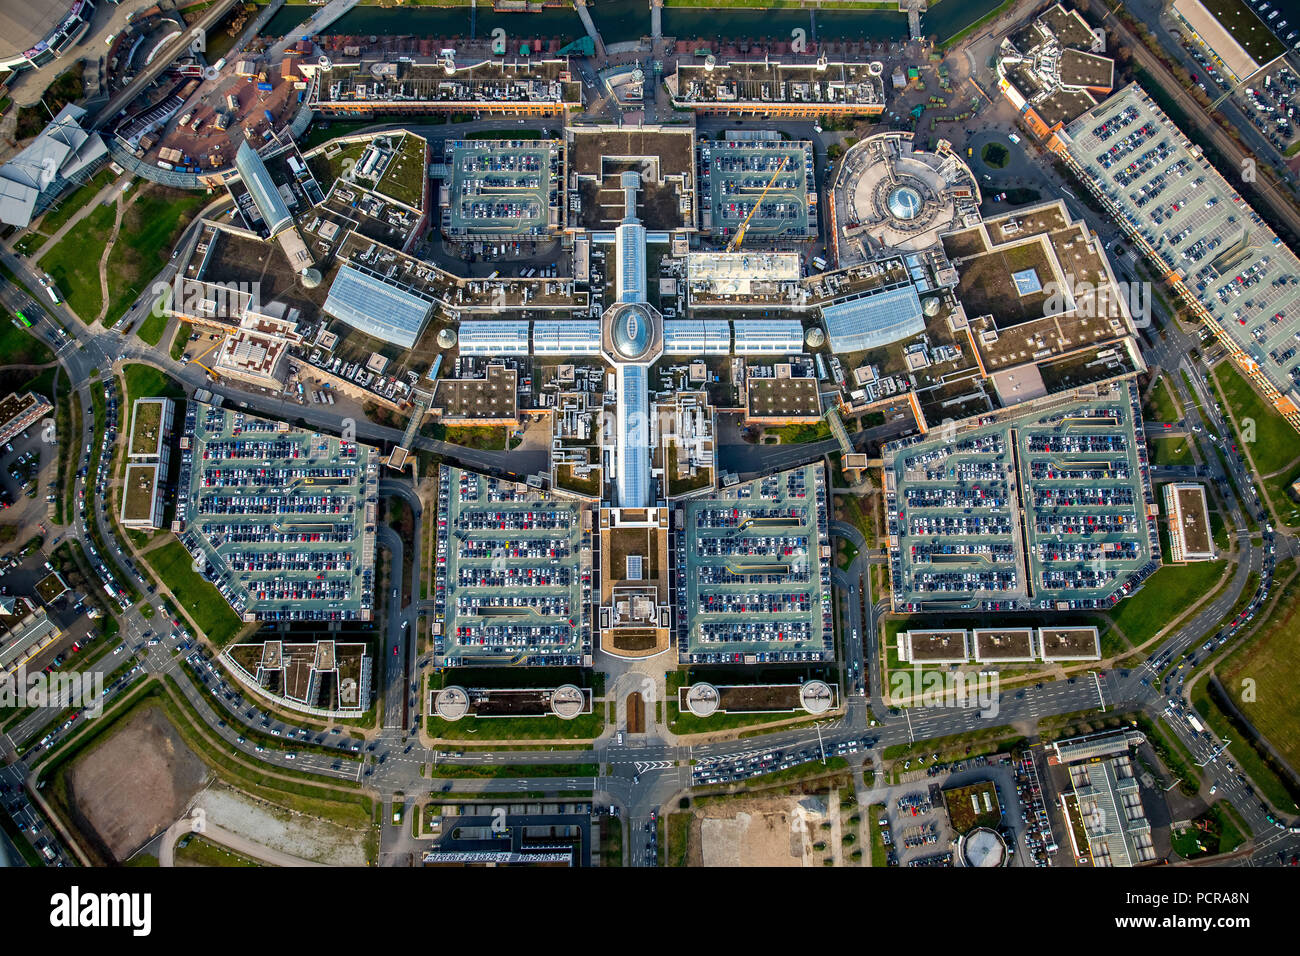 Shopping center CentrO Oberhausen, shopping mall, largest shopping and leisure center in Europe and at the same time Germany's largest shopping center, vertical shot, Oberhausen, Ruhr area, North Rhine-Westphalia, Germany Stock Photo